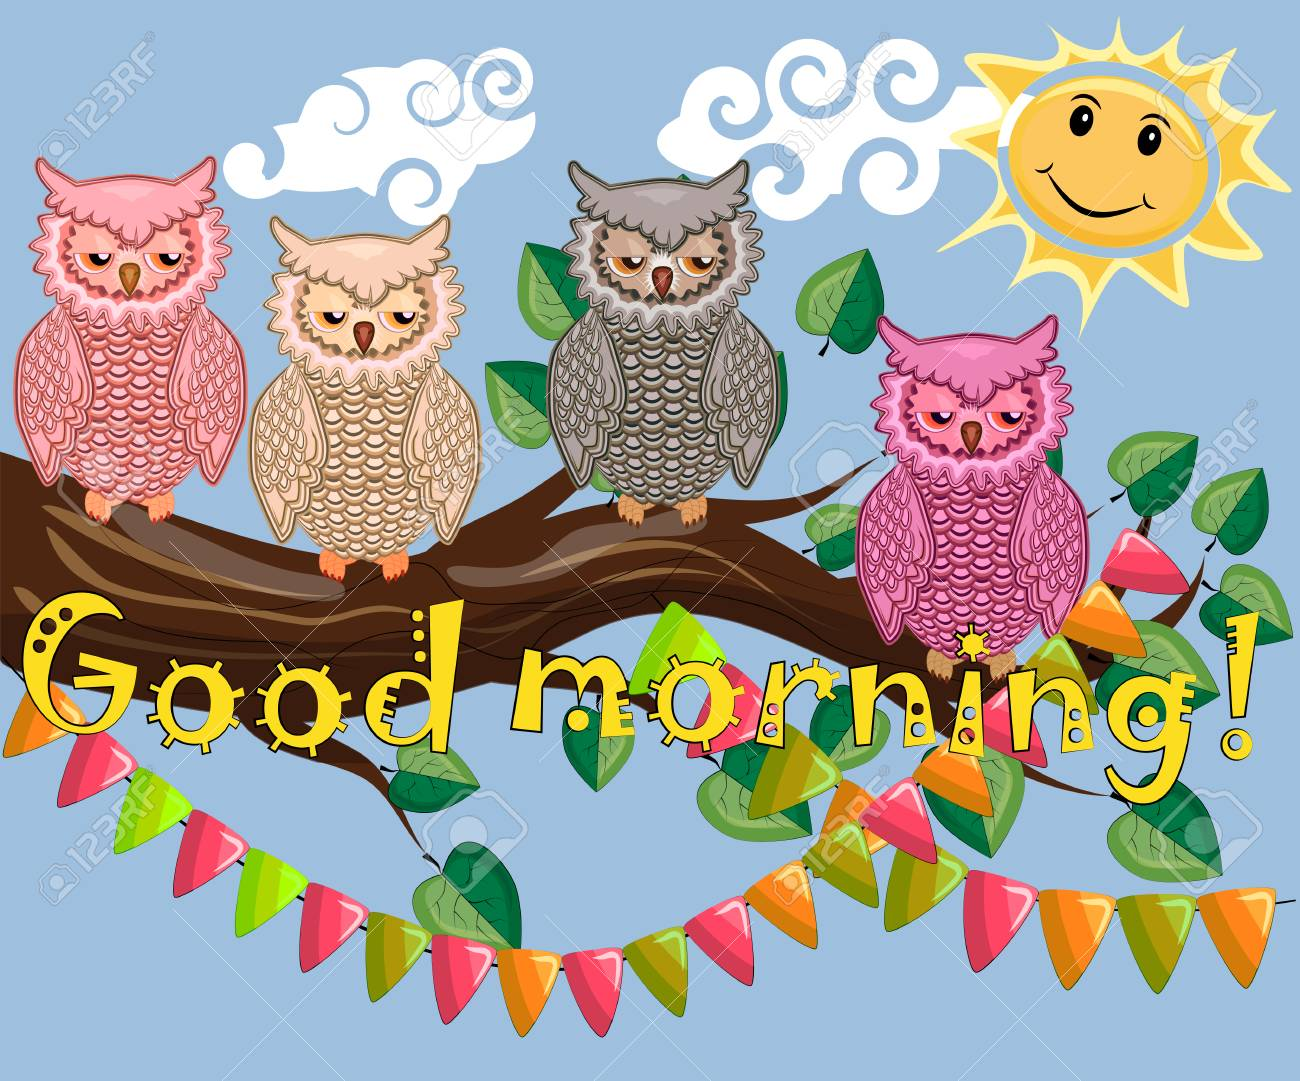 Good Morning Greetings Text With Owl Design Royalty Free Cliparts